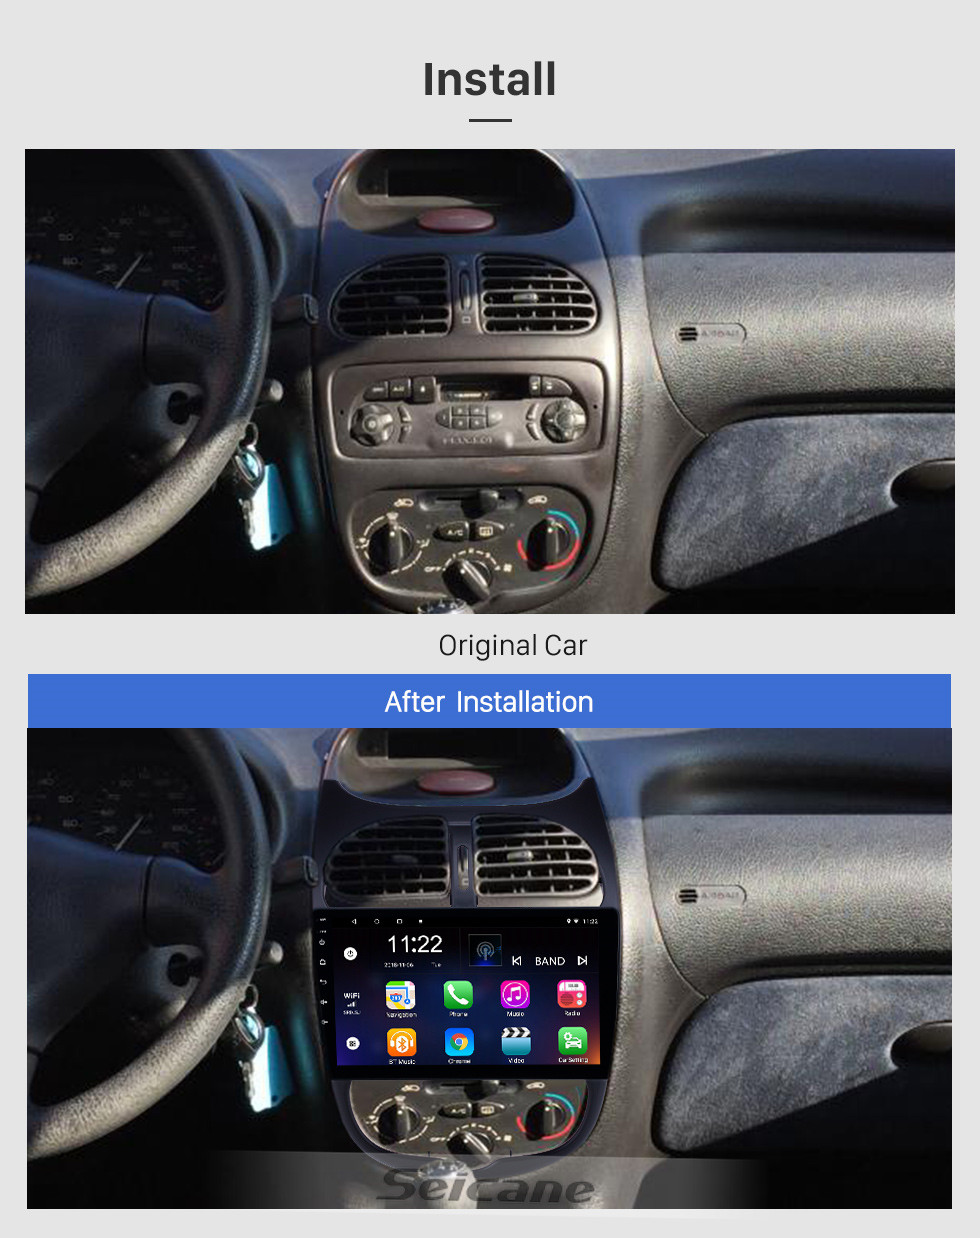 Seicane HD Touchscreen 9 inch Android 10.0 GPS Navigation Radio for 2000-2016 Peugeot 206 with Bluetooth AUX WIFI support Carplay TPMS DAB+